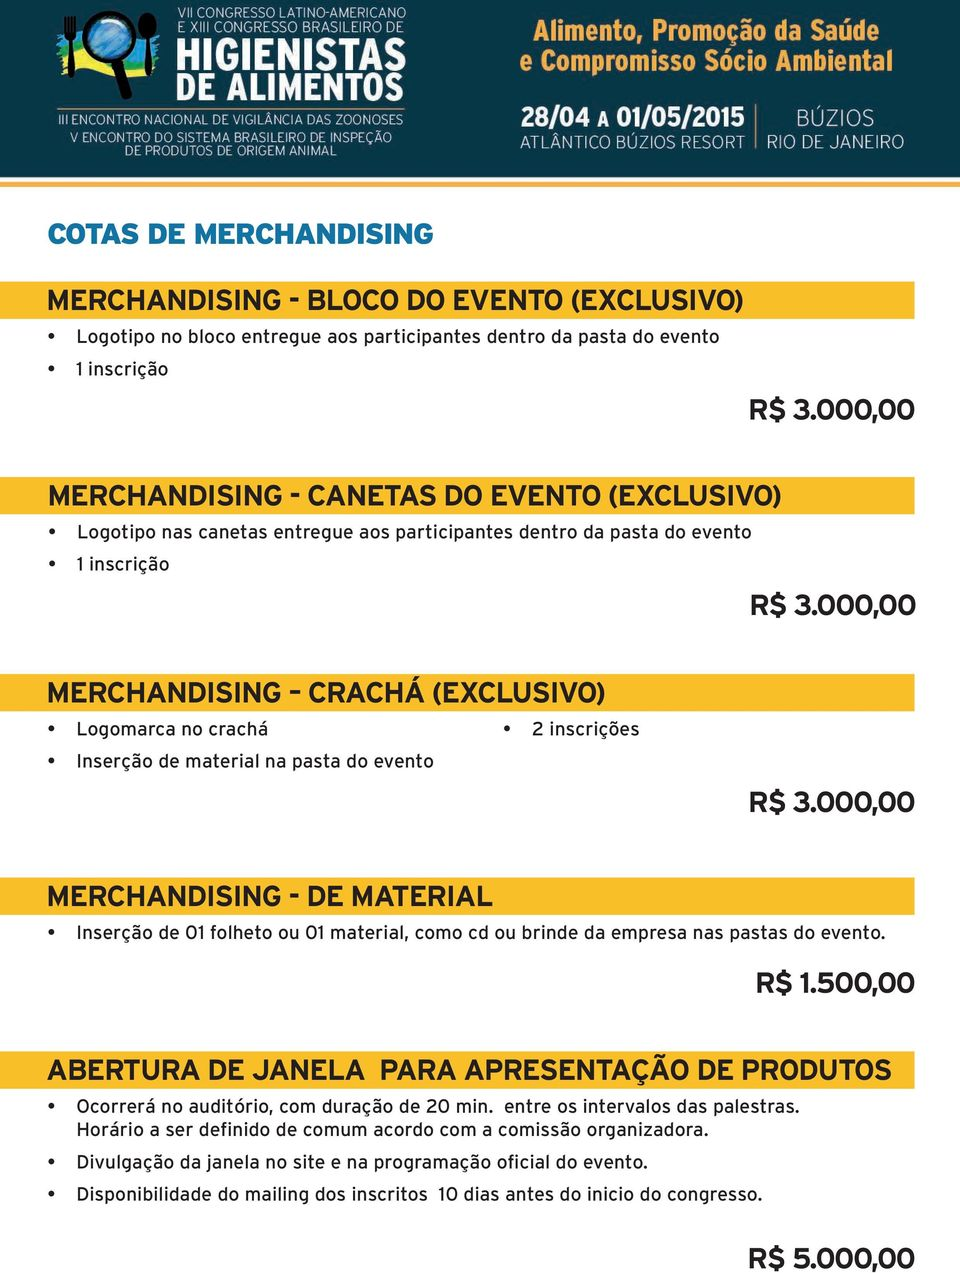 000,00 MERCHANDISING CRACHÁ (EXCLUSIVO) Logomarca no crachá 2 inscrições Inserção de material na pasta do evento R$ 3.